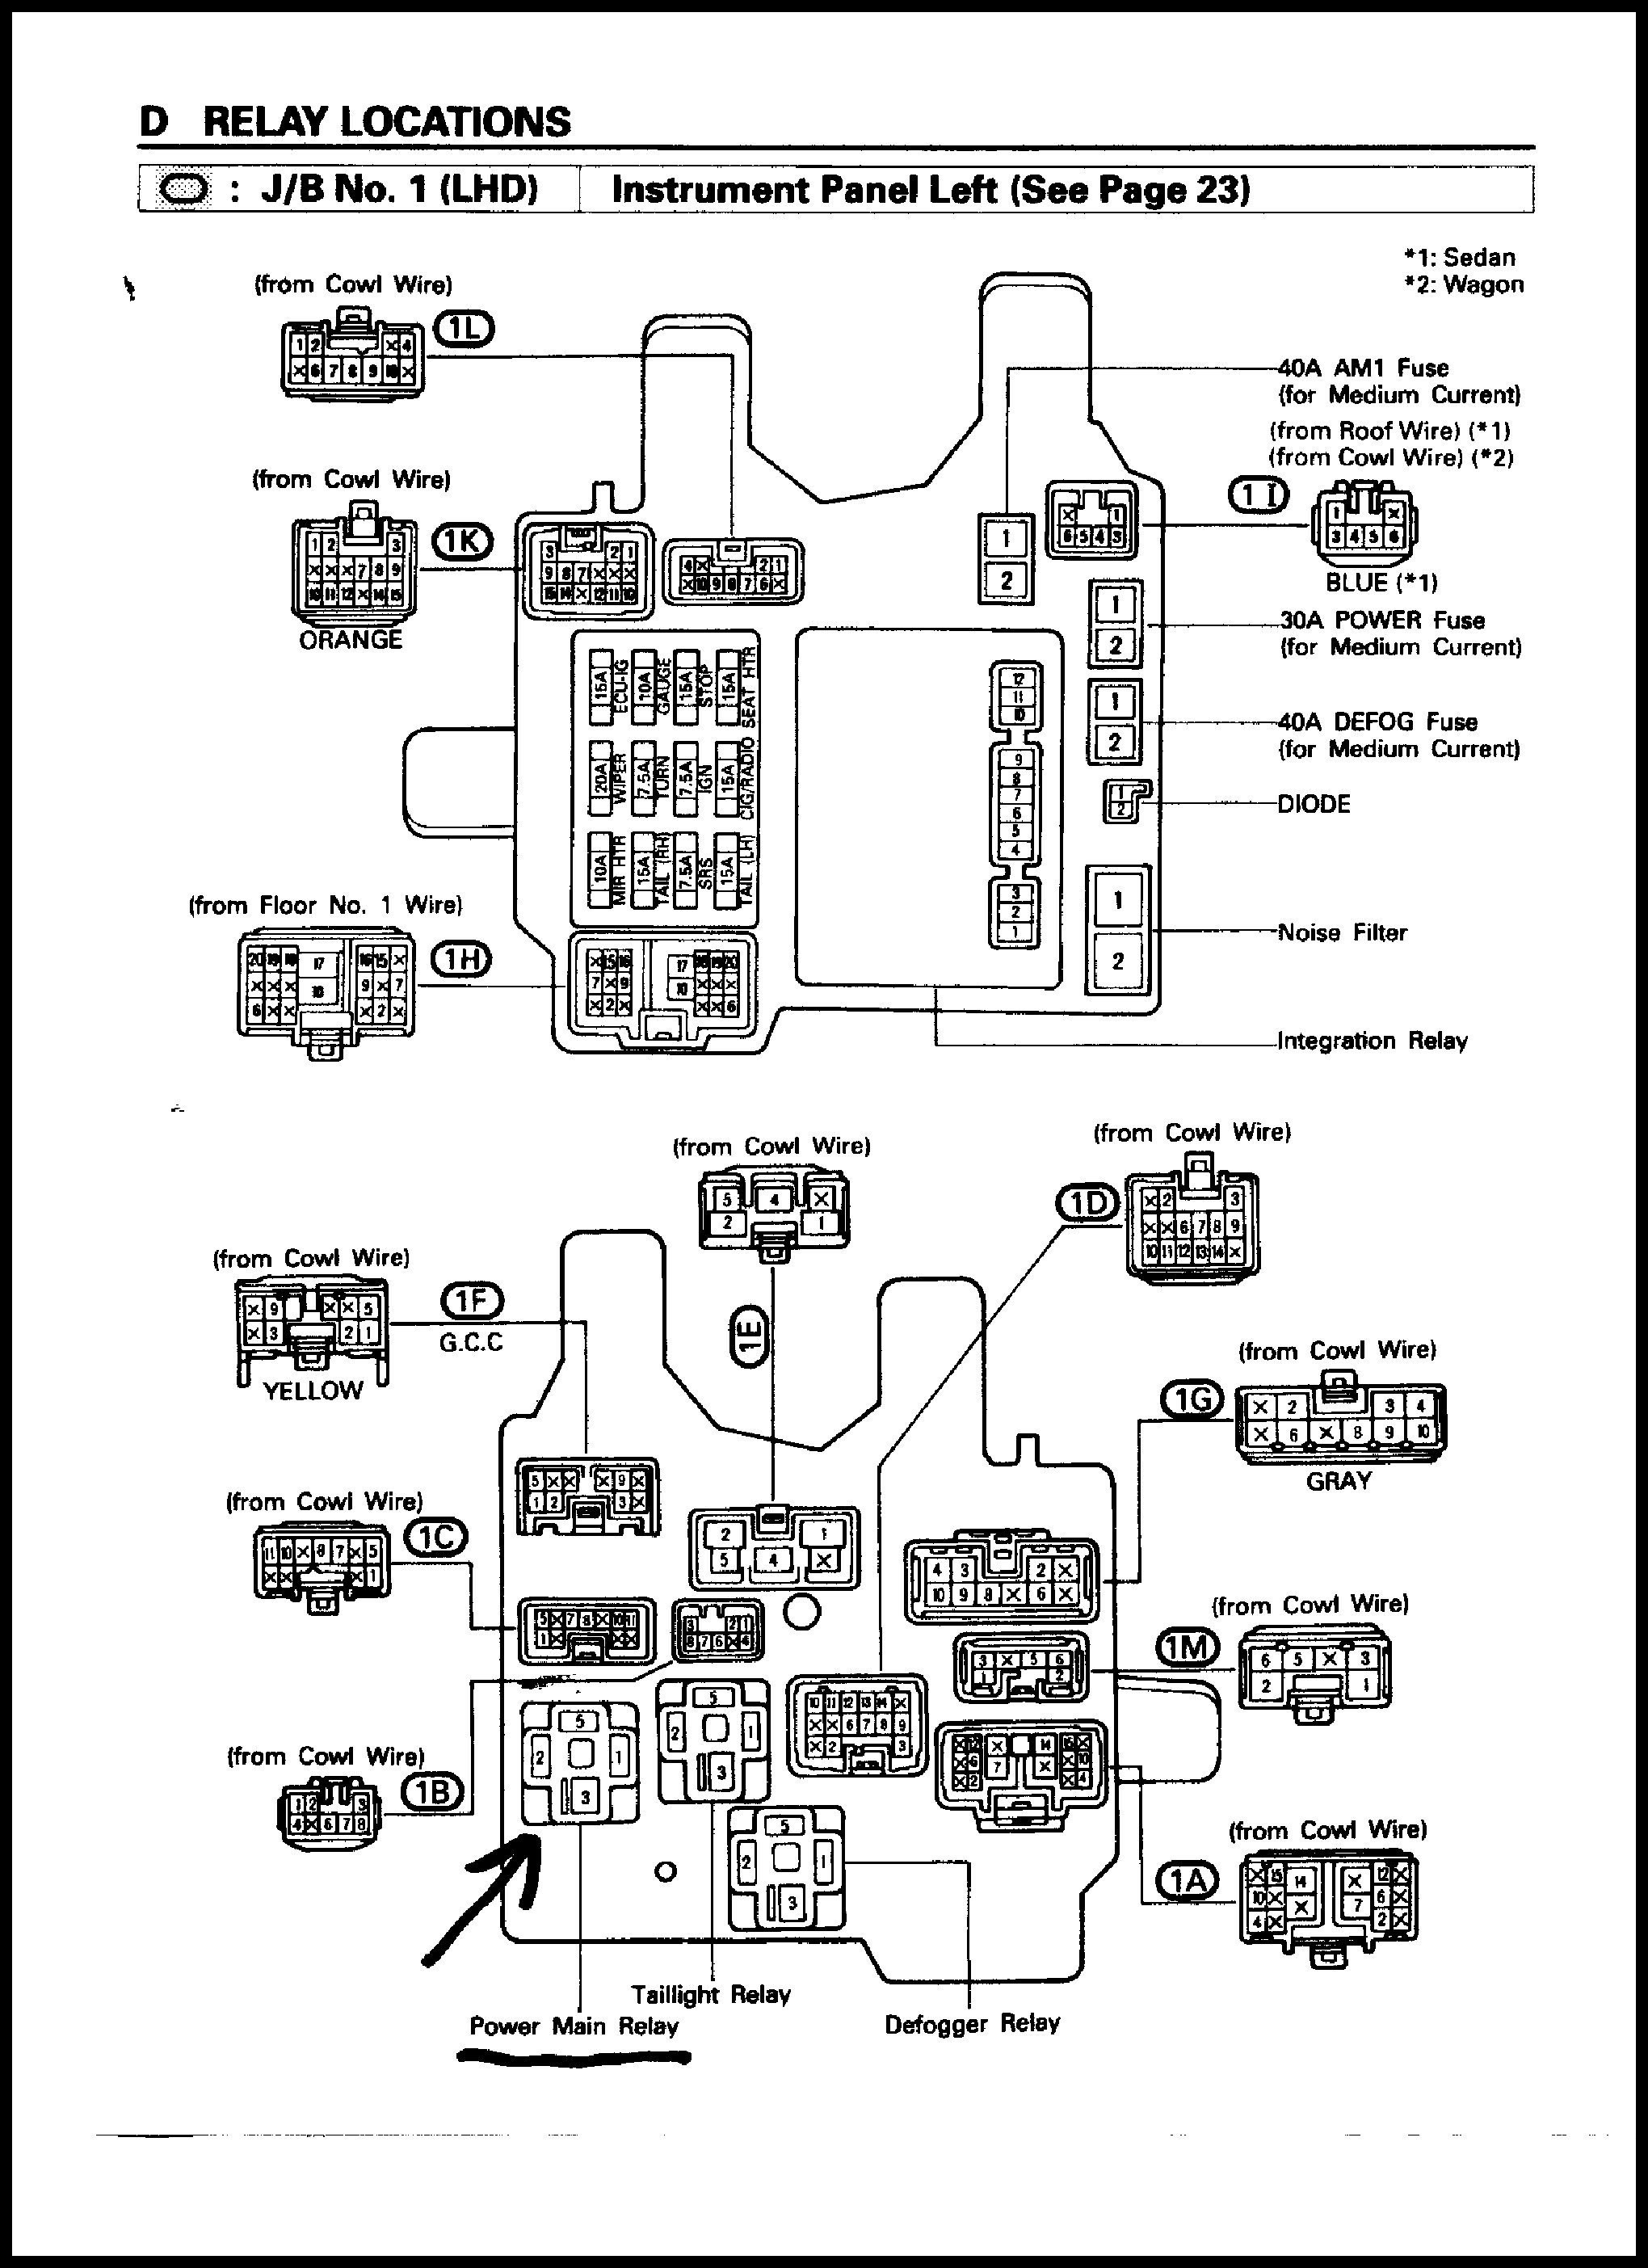 [SCHEMATICS_48YU]  98 toyota Camry Fuse Box – The Best Choice Car | 1998 Camry Fuse Box Diagram |  | 2009 toyota Rav4 Key Fob Battery Replacement